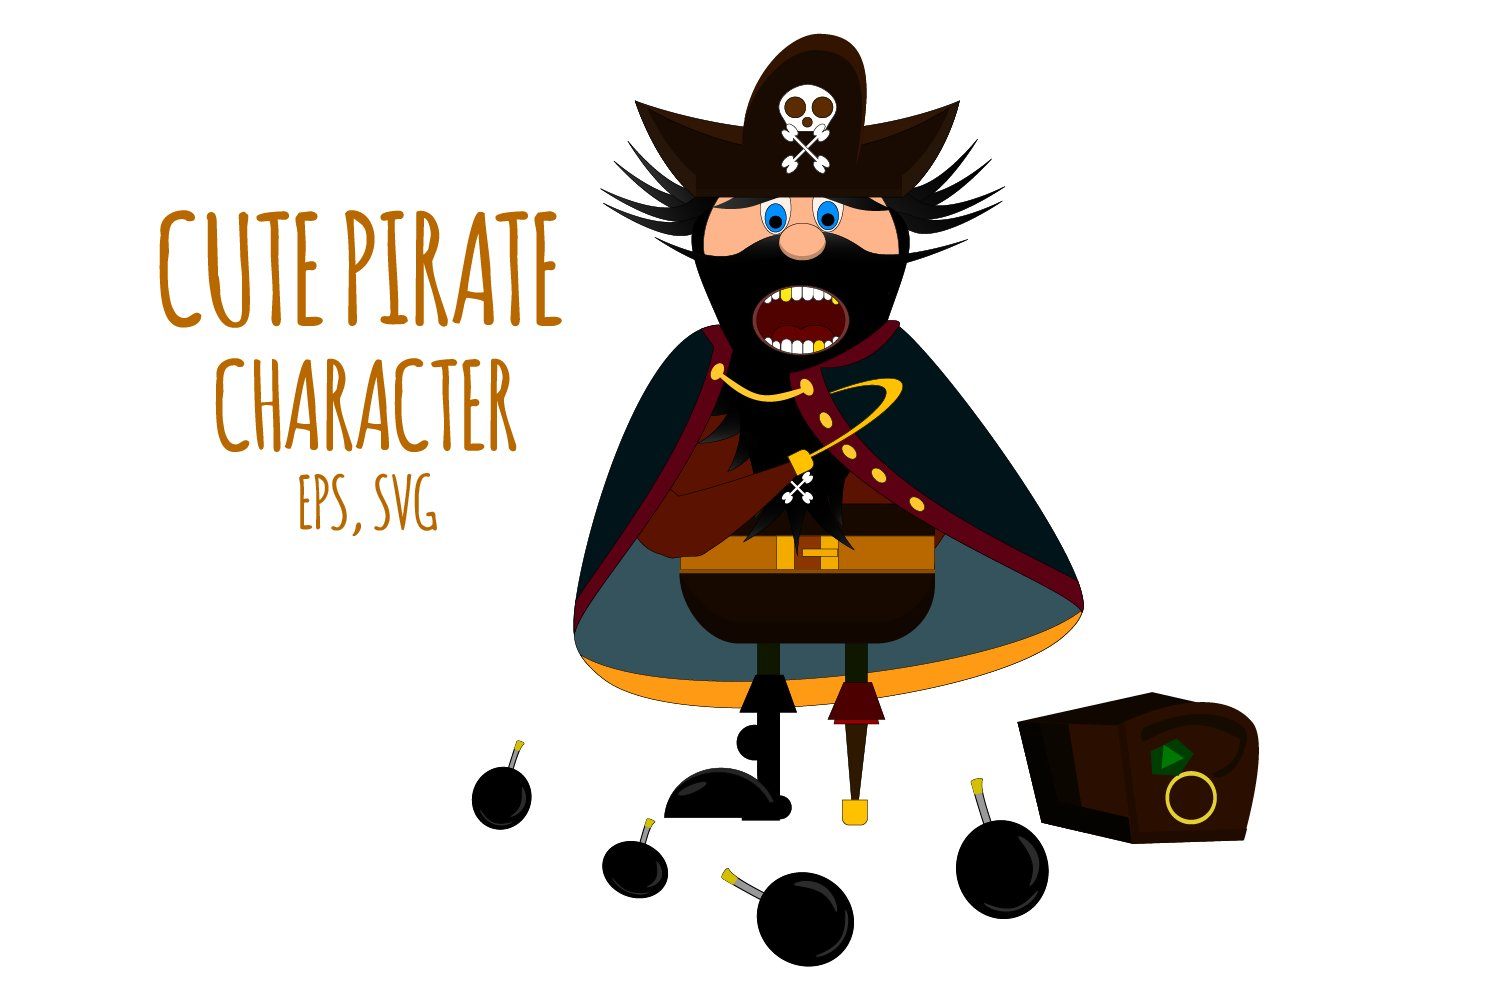 Pirate Clipart Pirate Character Pirate Graphic 416381 Illustrations Design Bundles